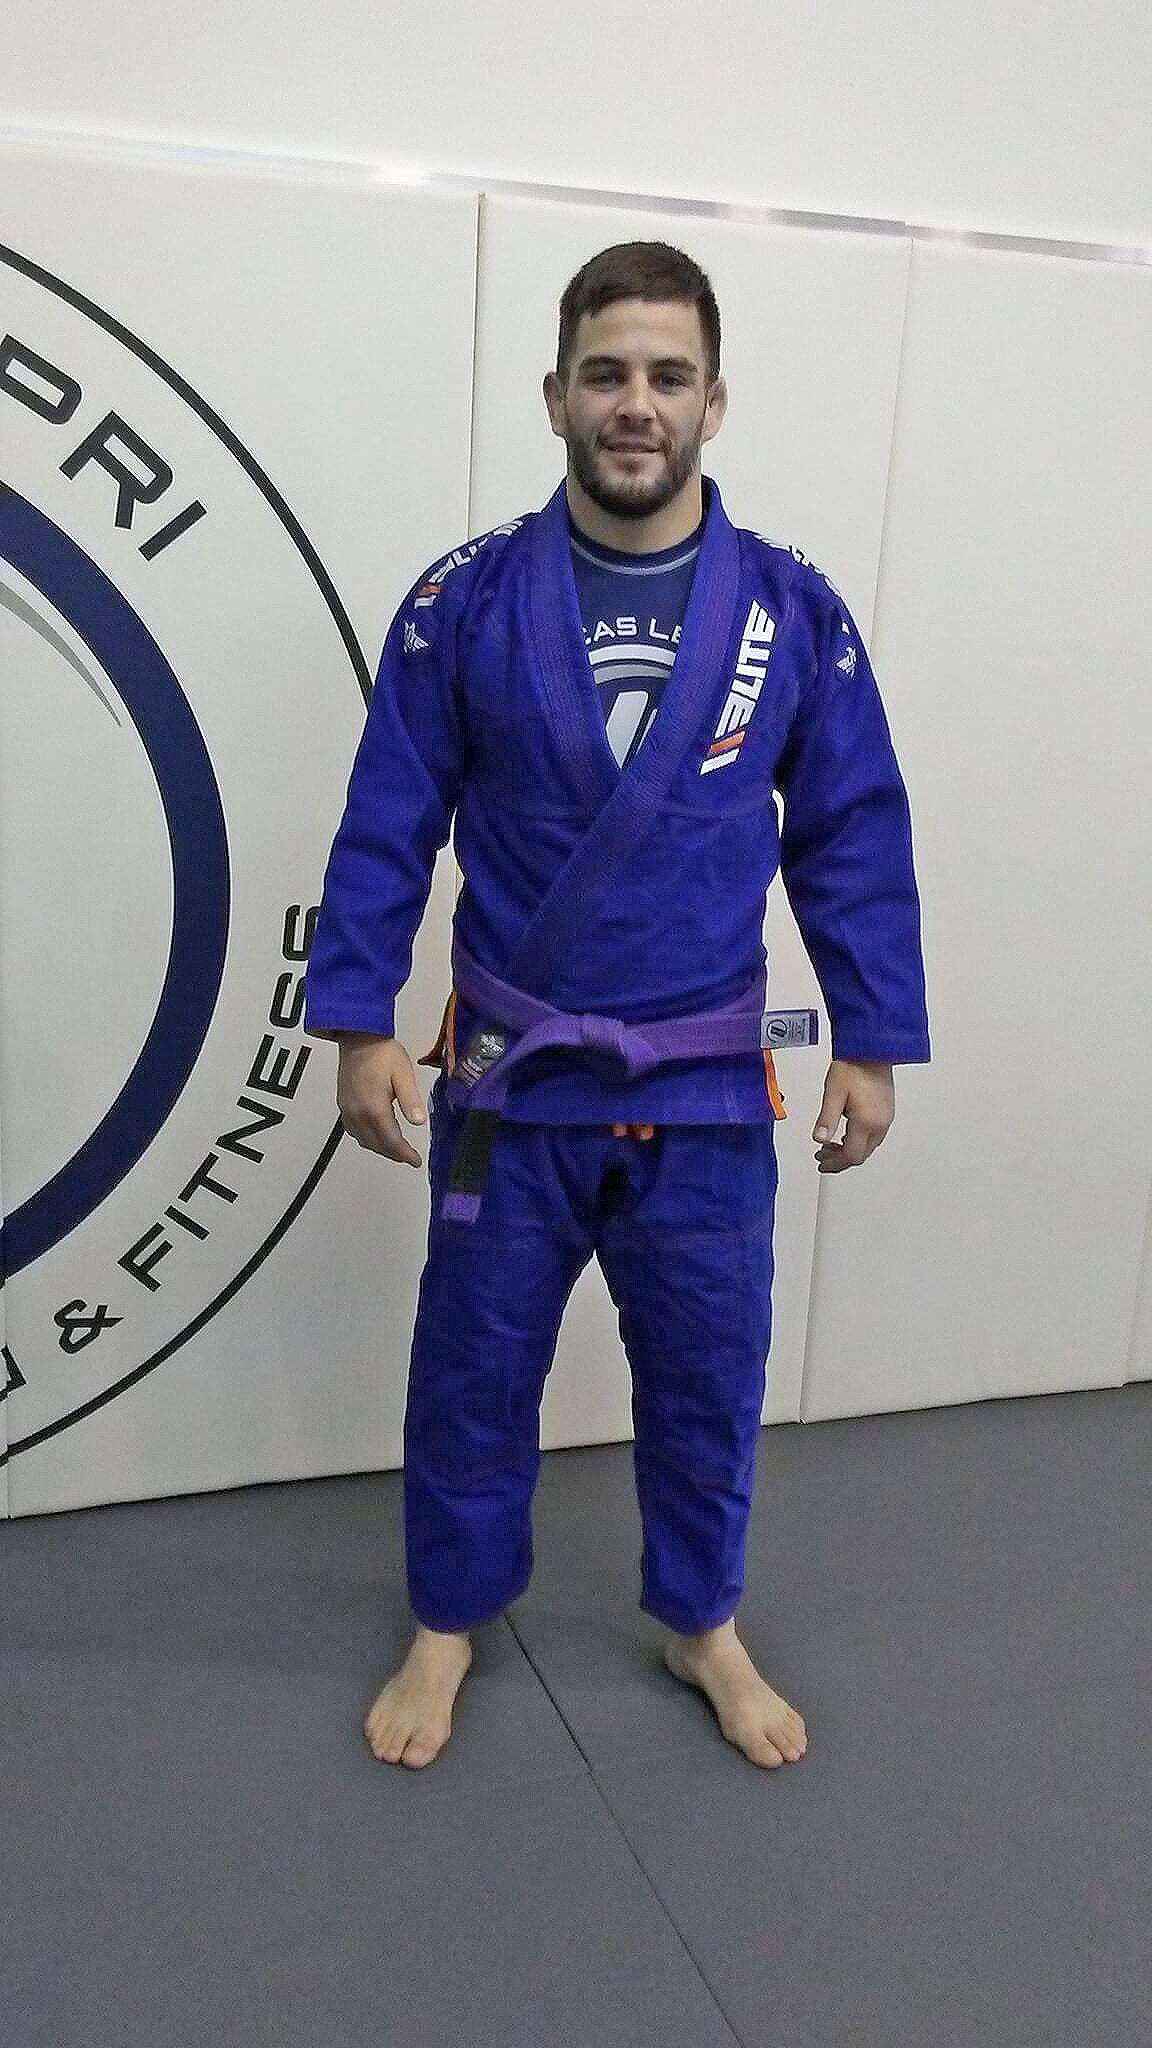 Elite Sports Team Elite Bjj Fighter  Brad Barnett Image10